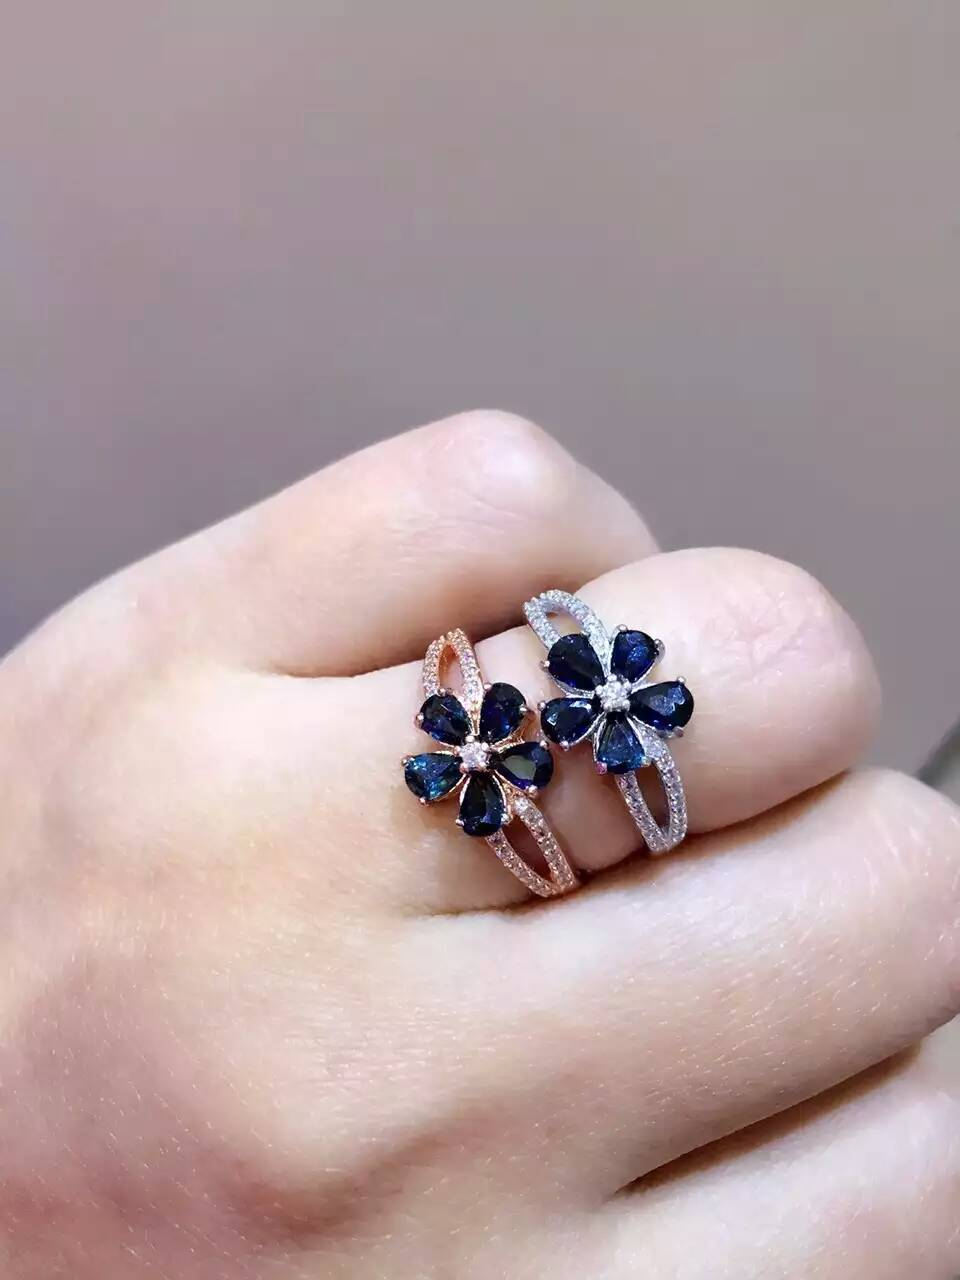 Natural blue sapphire gem Ring Natural gemstone Ring 925 sterling silver trendy luxurious big flowers women wedding gift Jewelry